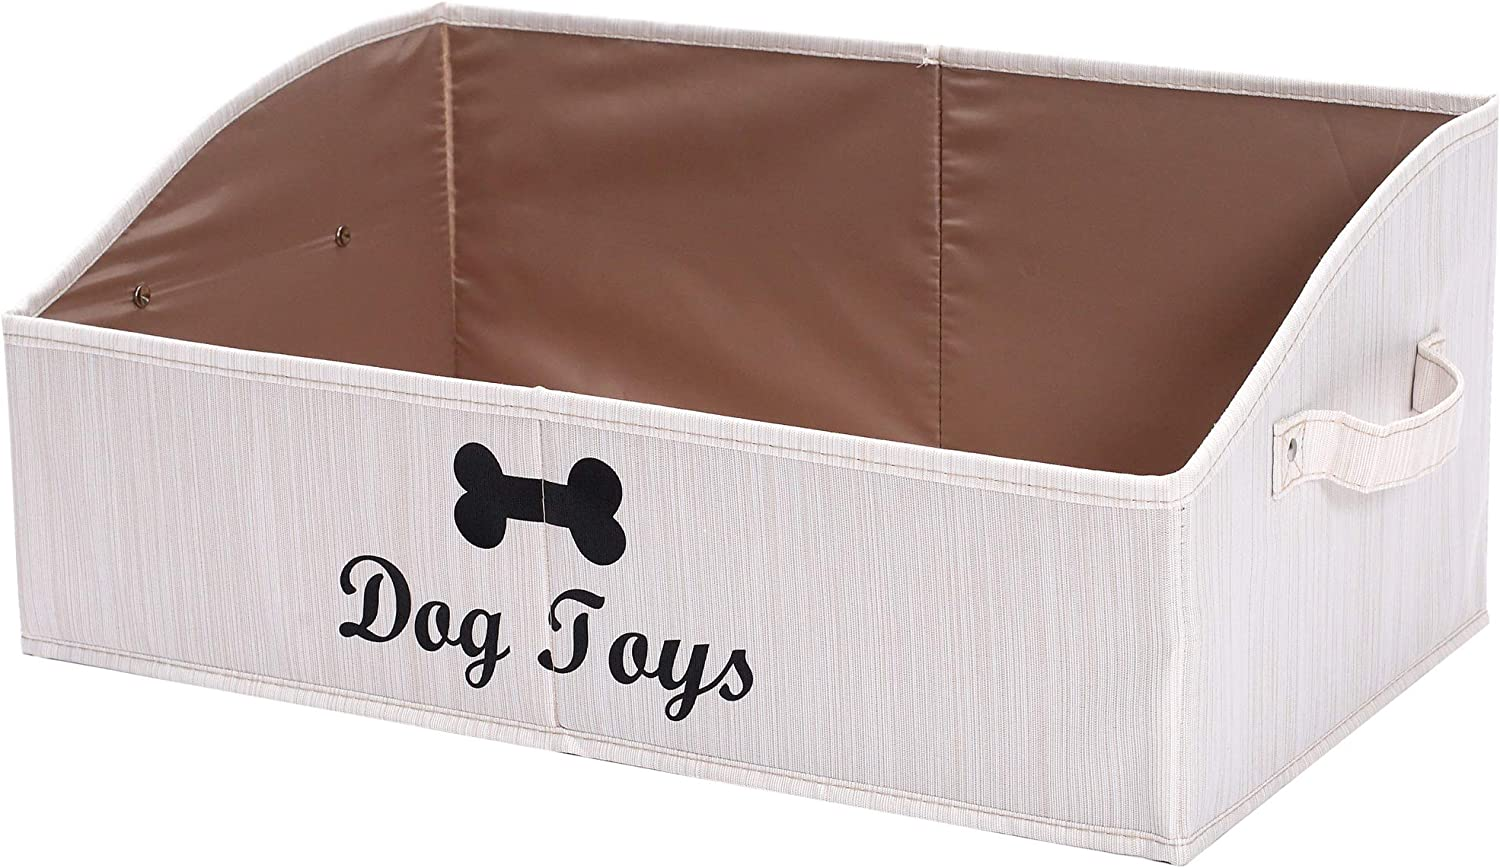 Geyecete Large Dog Toys Storage Bins - Foldable Fabric Trapezoid Organizer Boxes with Handle, Collapsible Basket for Dog Toys